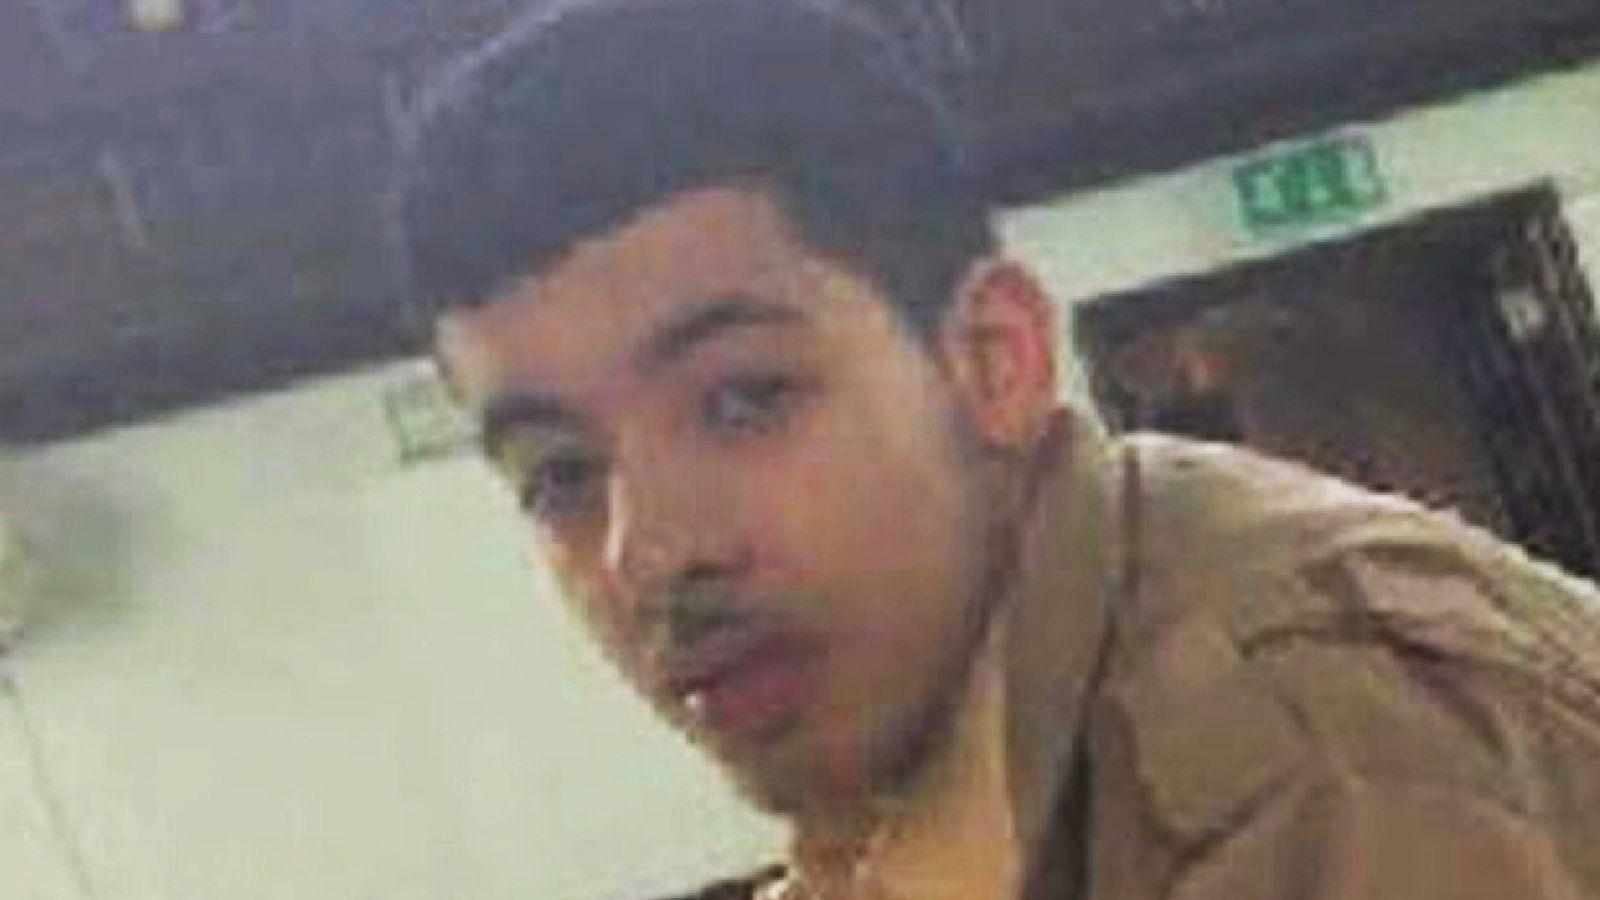 Manchester bombing: Footage shows Salman Abedi checking his explosives